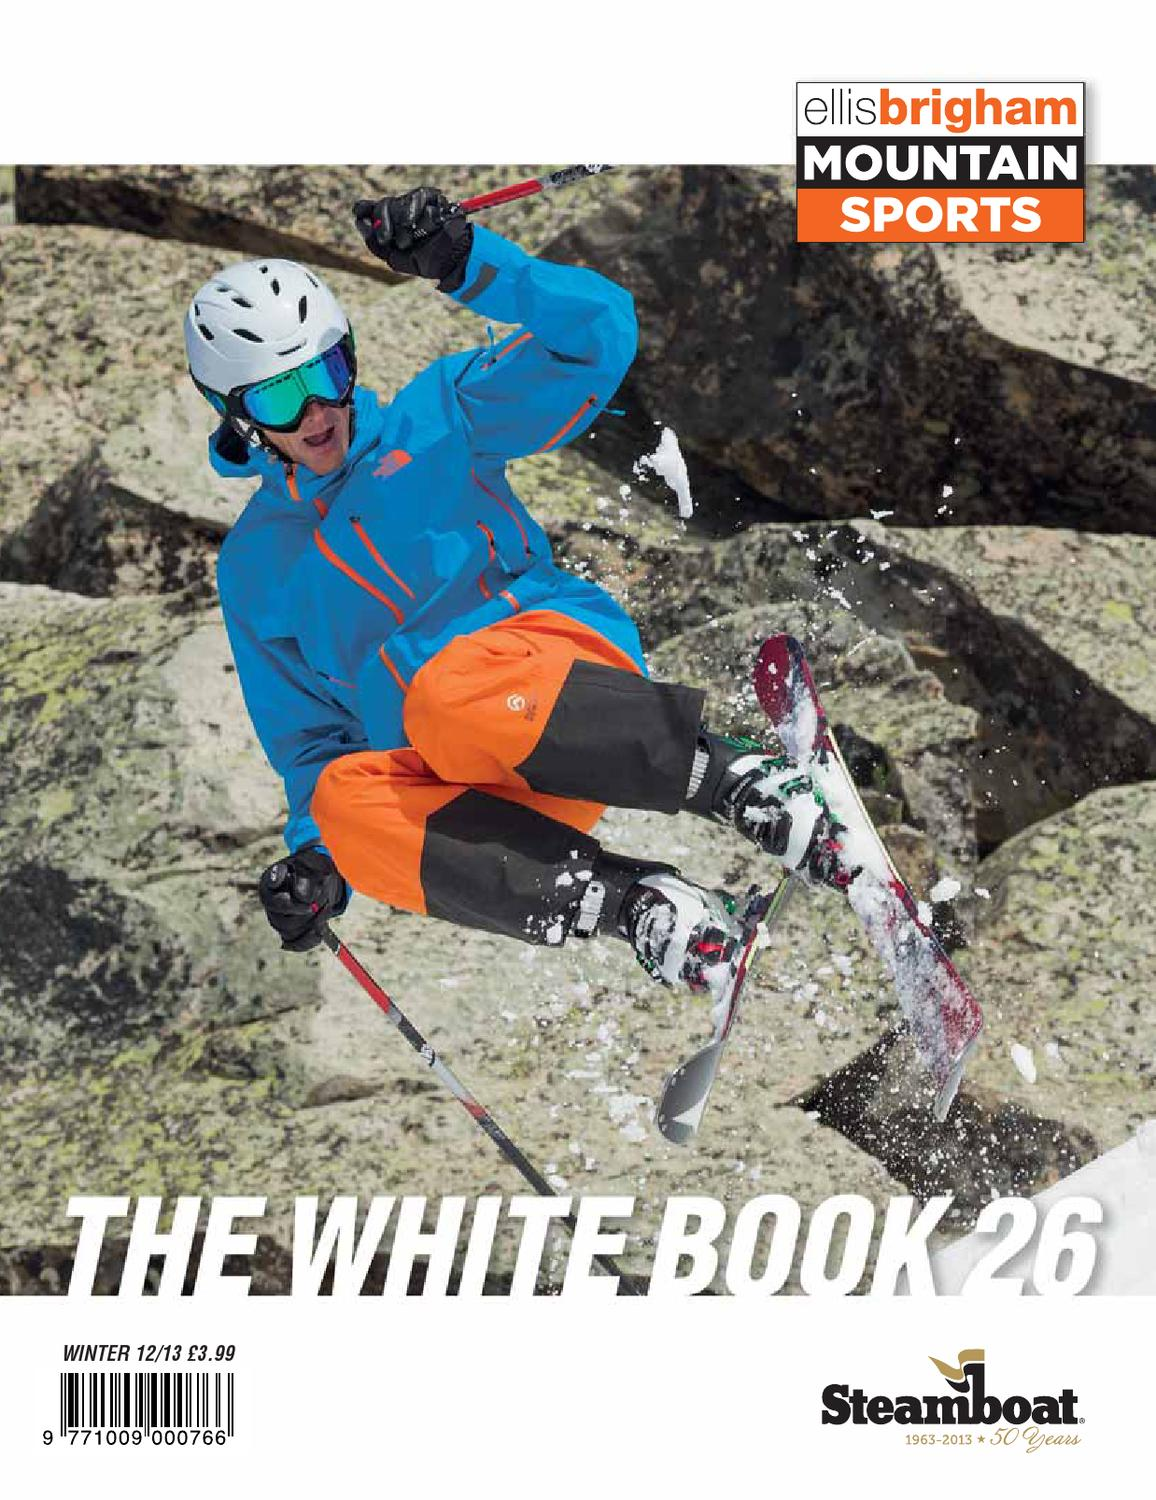 Whitebook 26 by Ellis Brigham Mountain Sports issuu